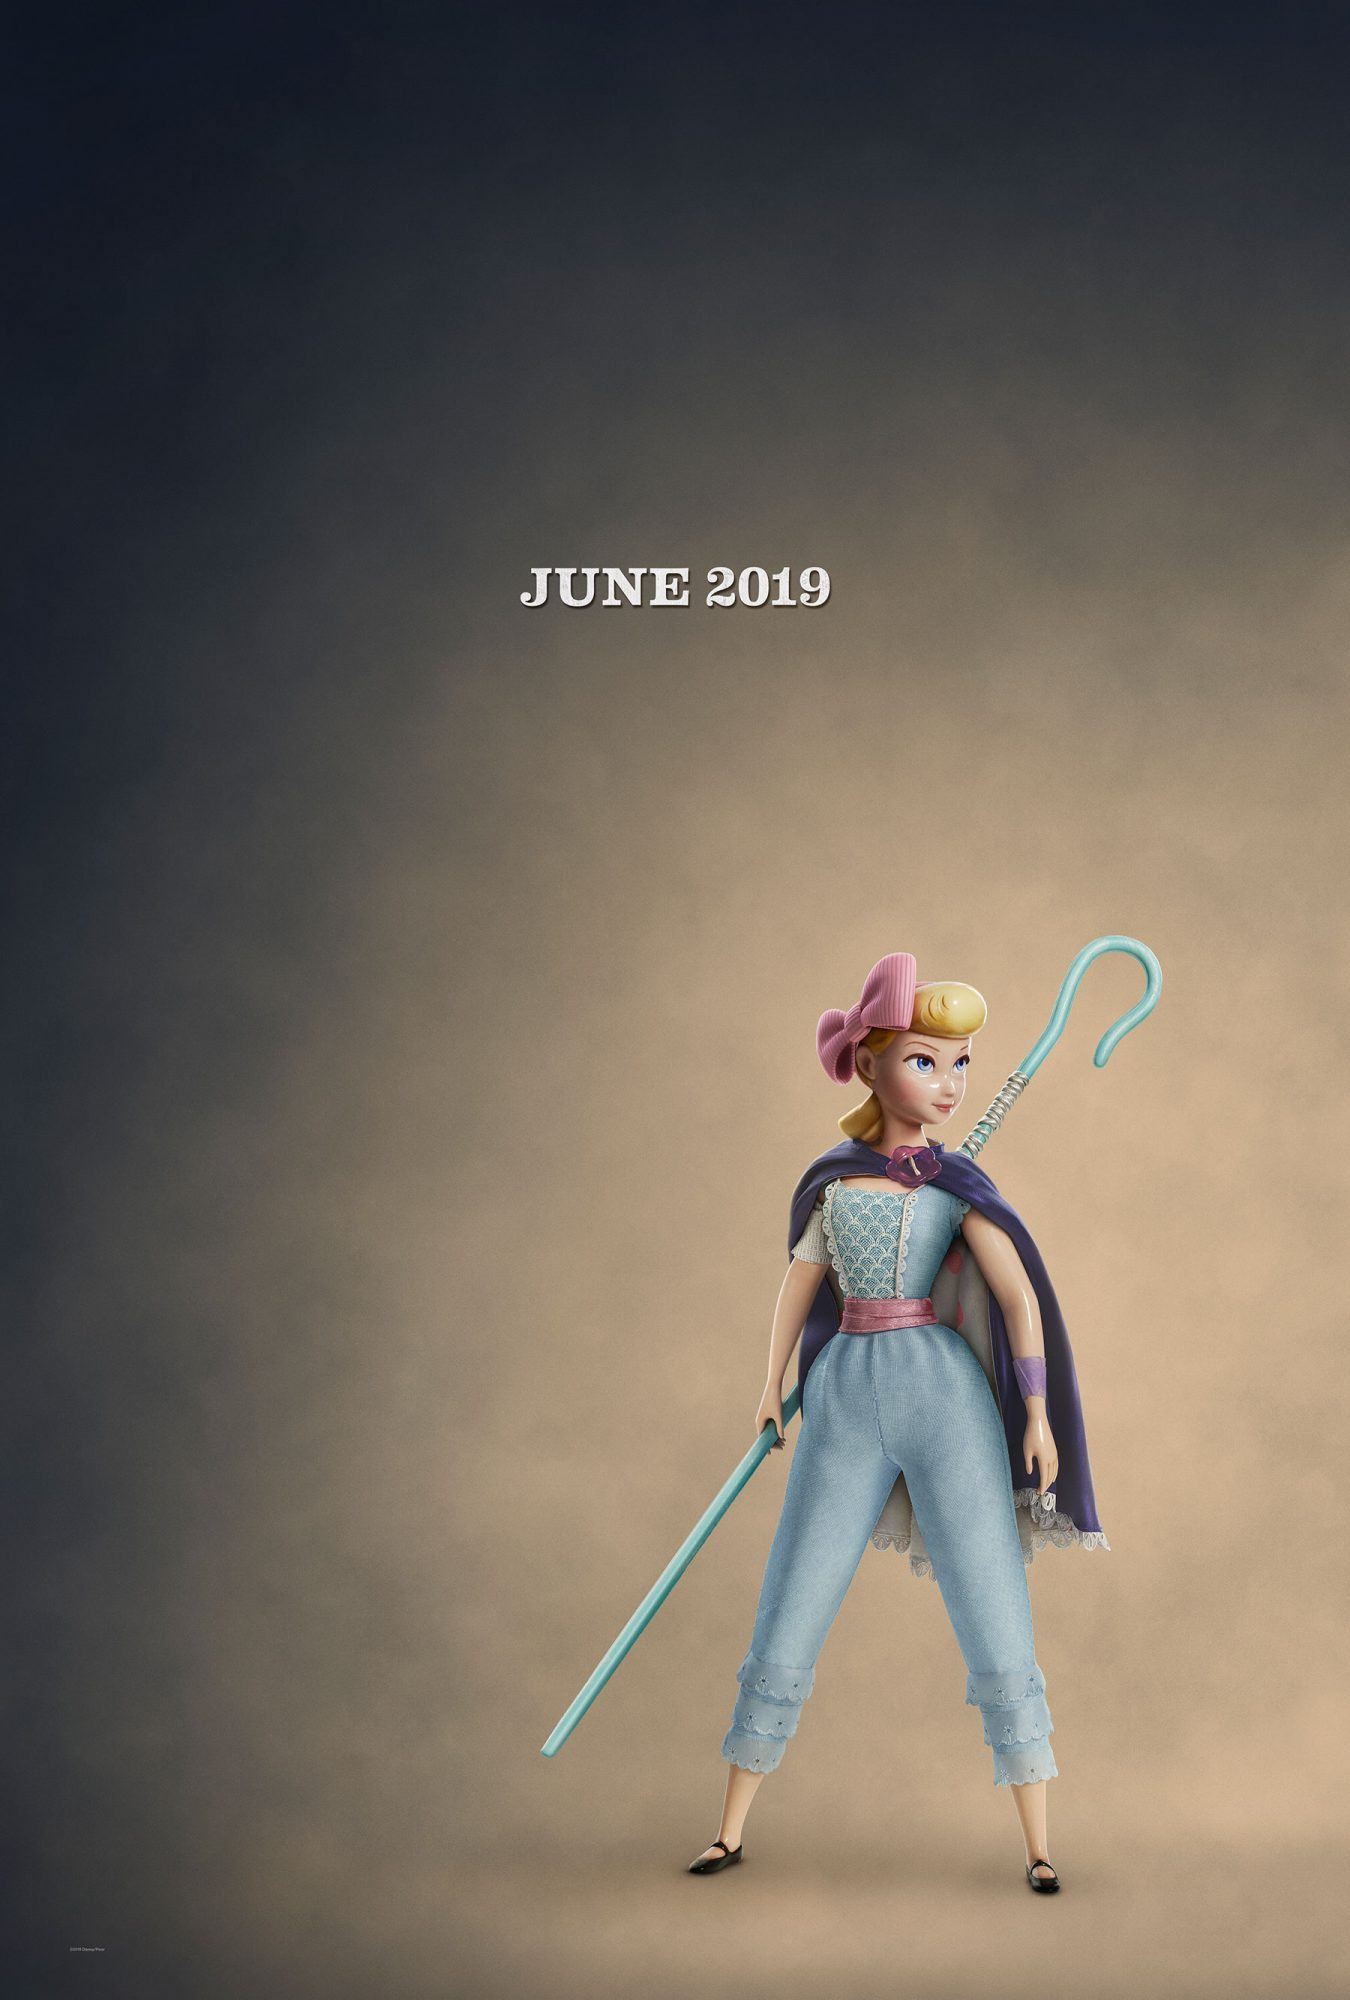 Toy Story 4 character posterBo PeepCR: Disney